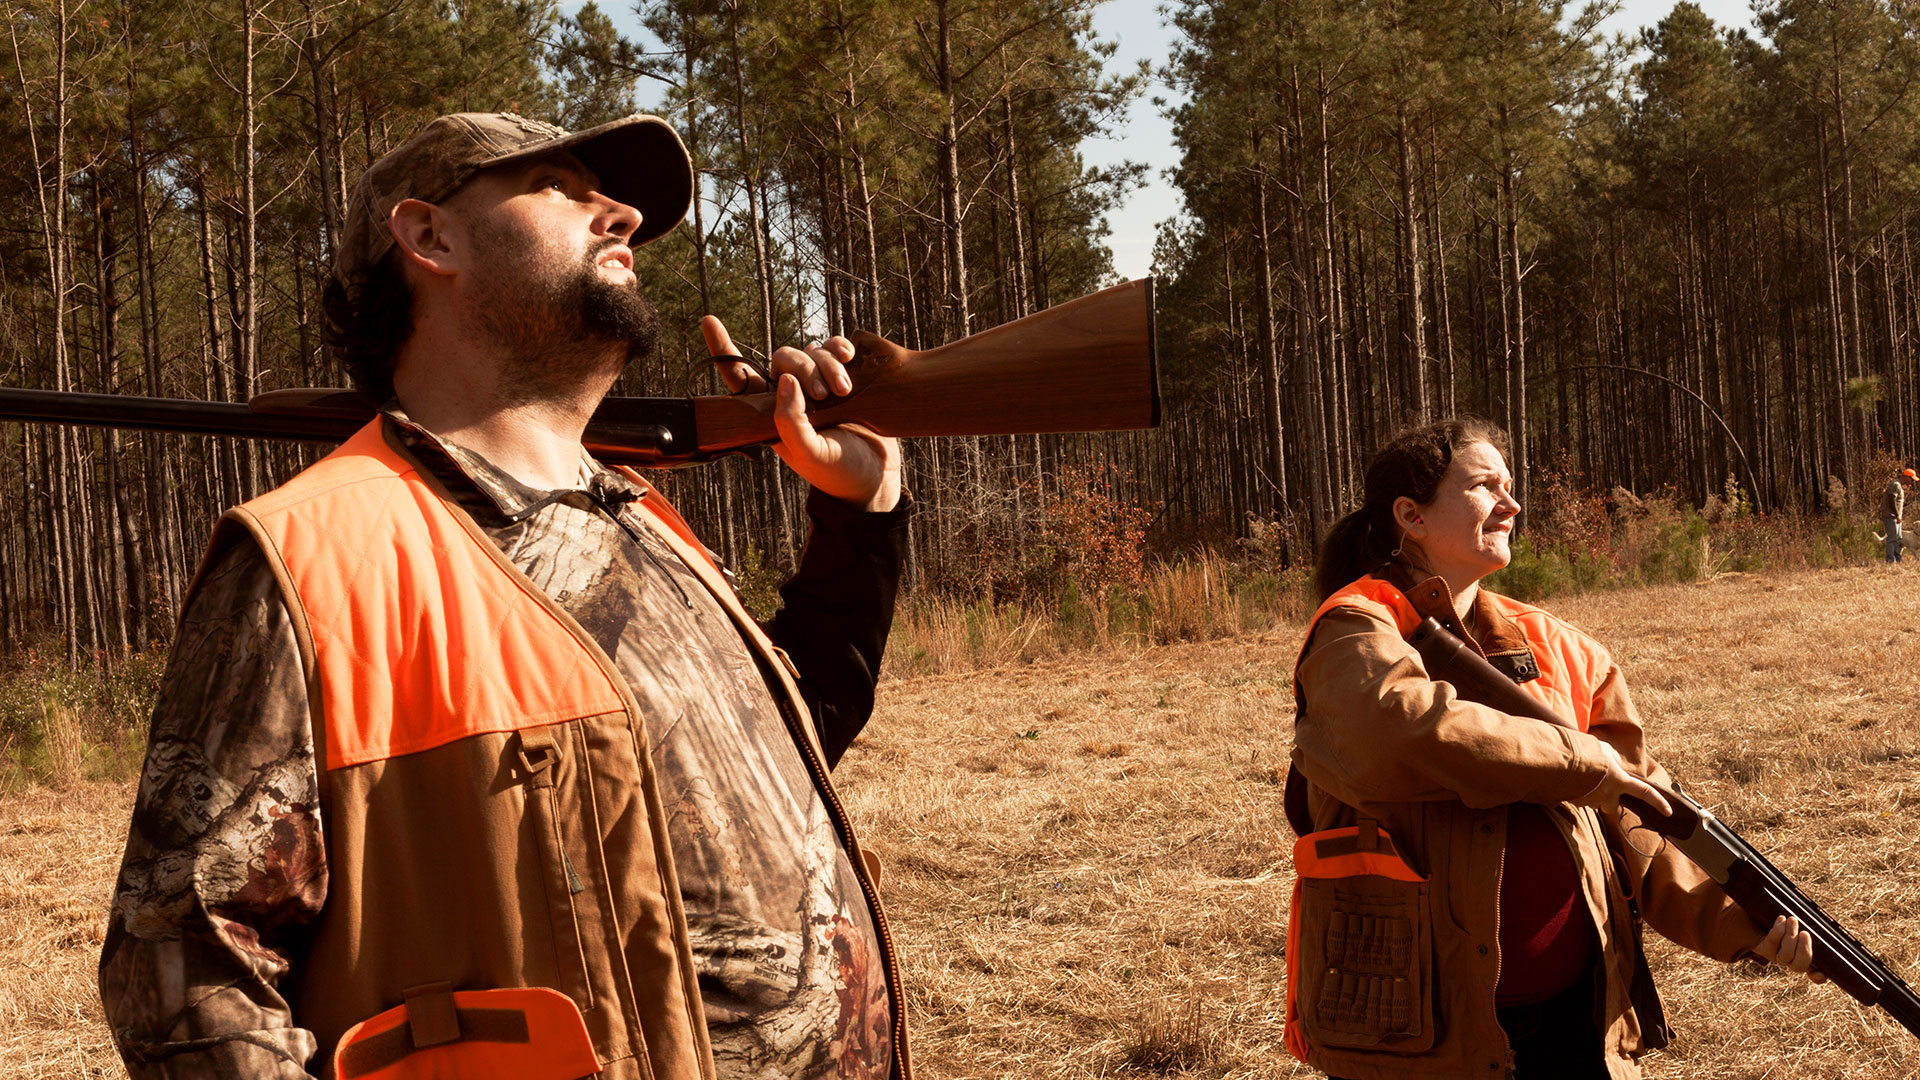 Alex and Jessica Sutton, doing some hunting, in Farmer/Veteran